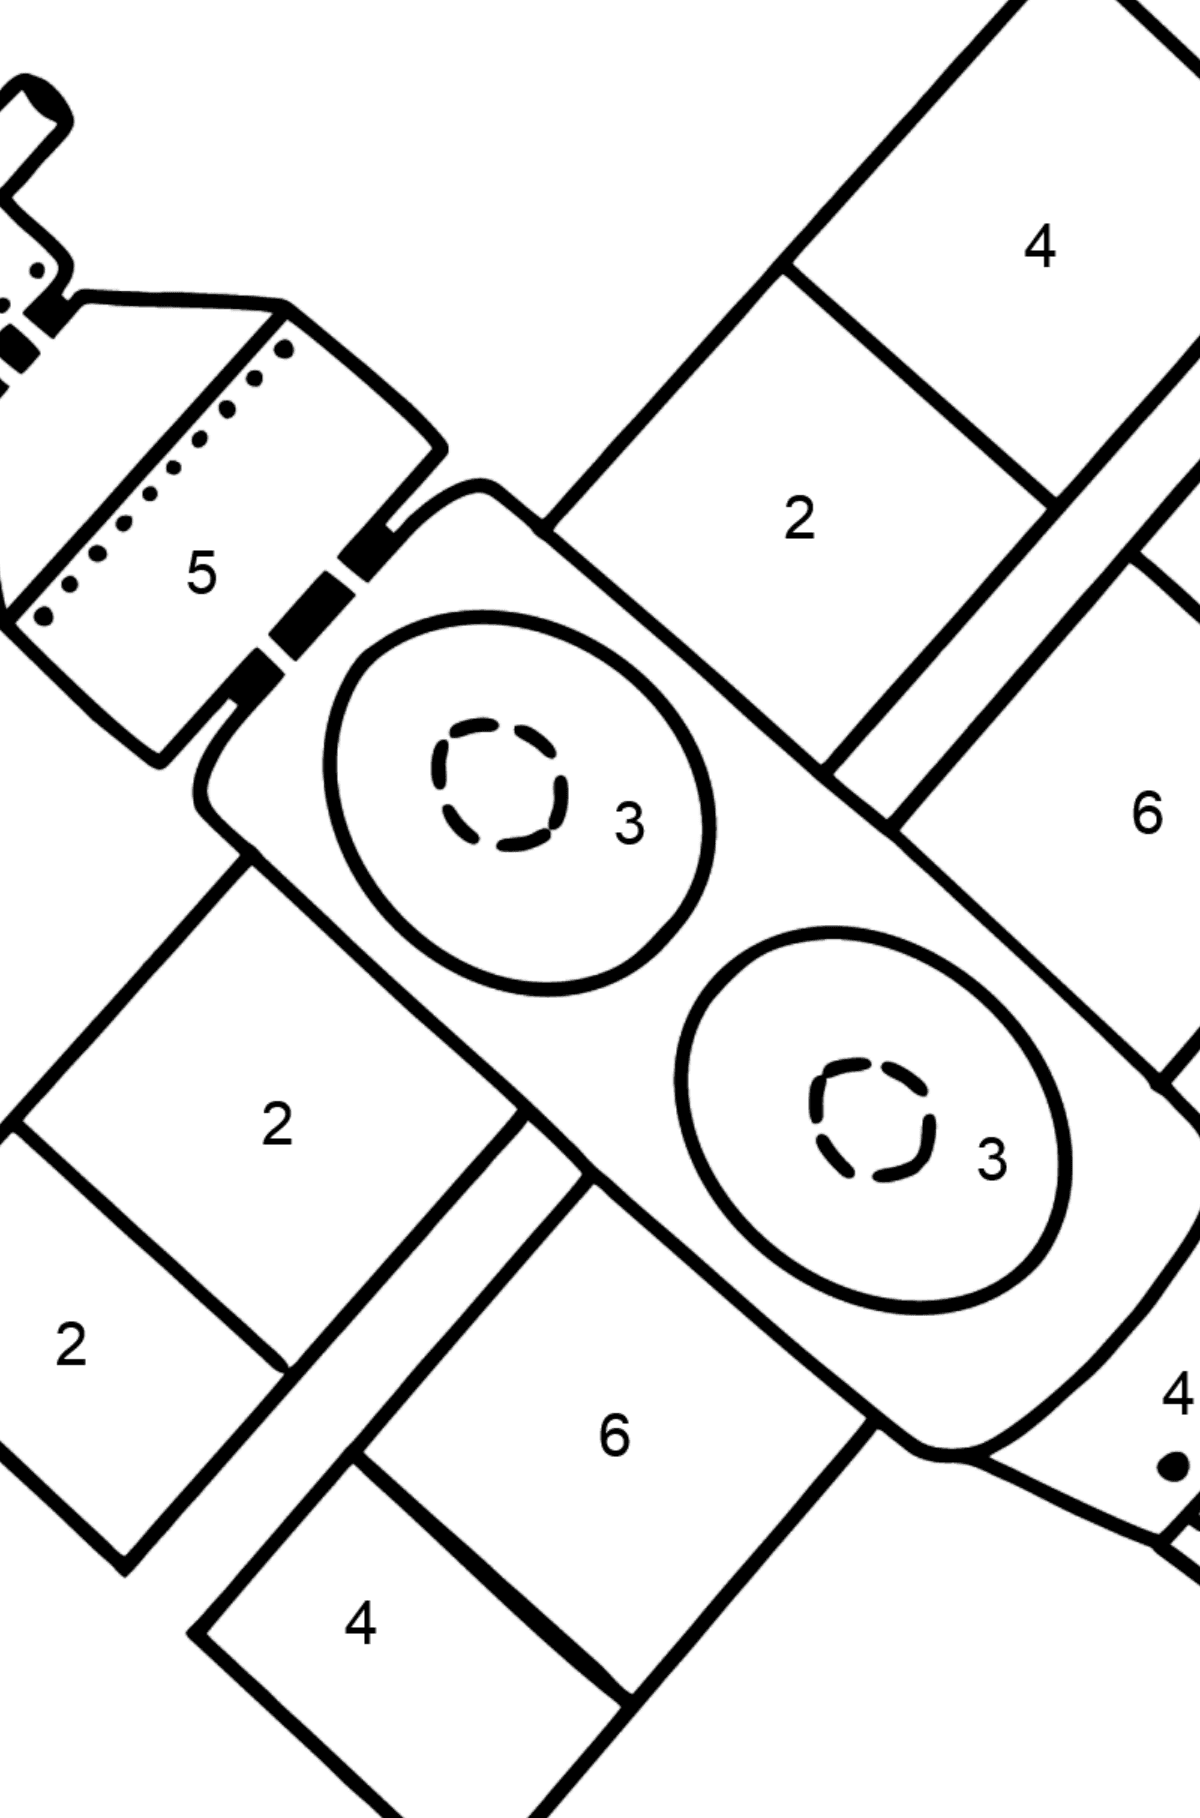 Spaceship coloring page - Coloring by Numbers for Kids